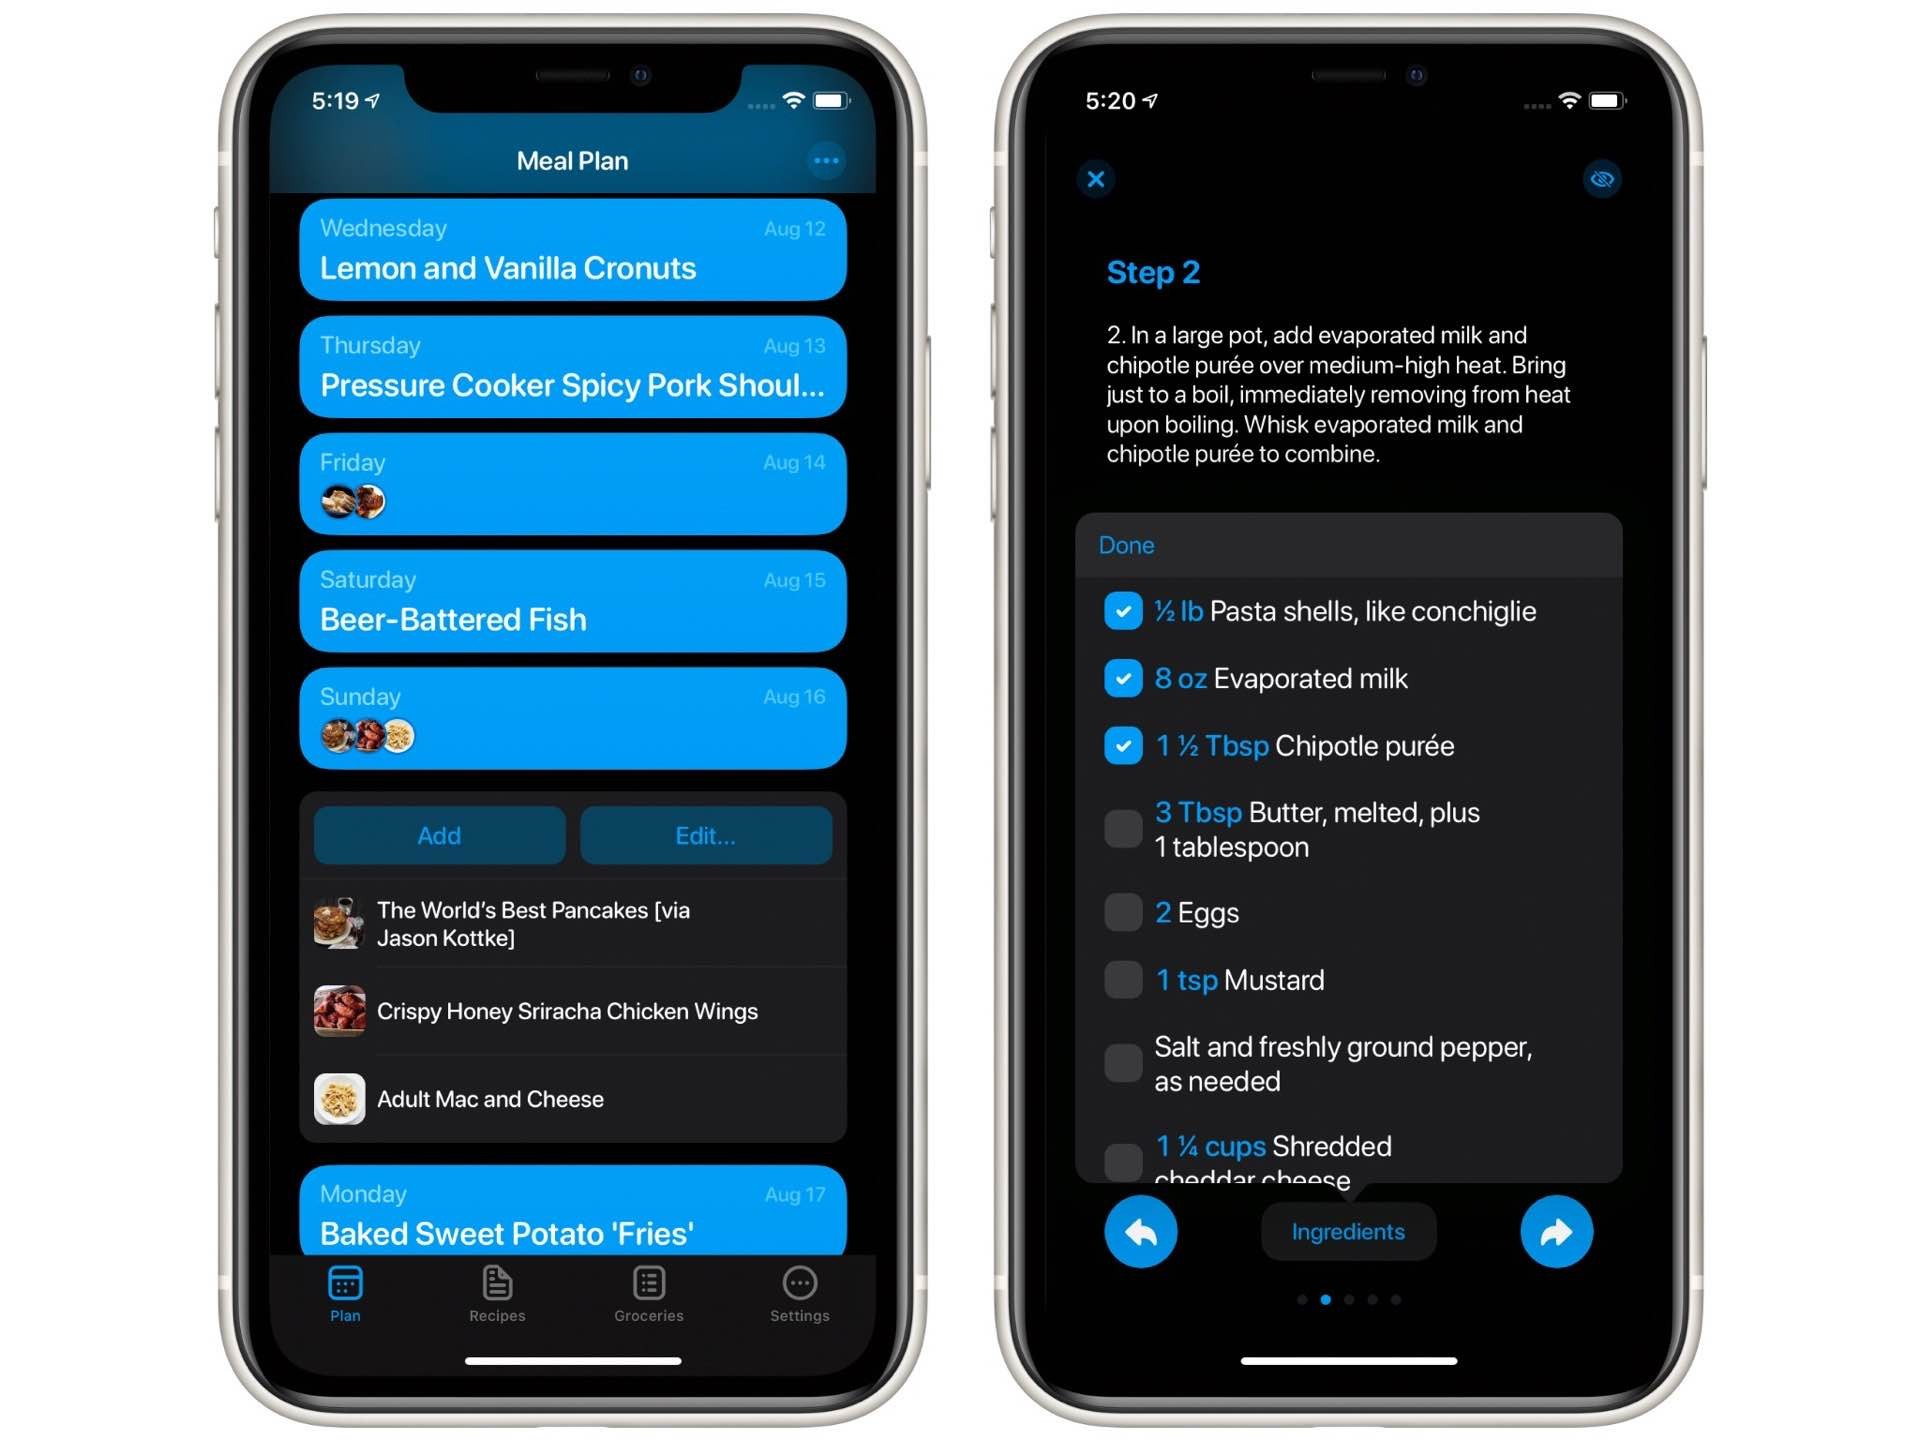 crouton-recipe-and-meal-planner-app-features-iphone